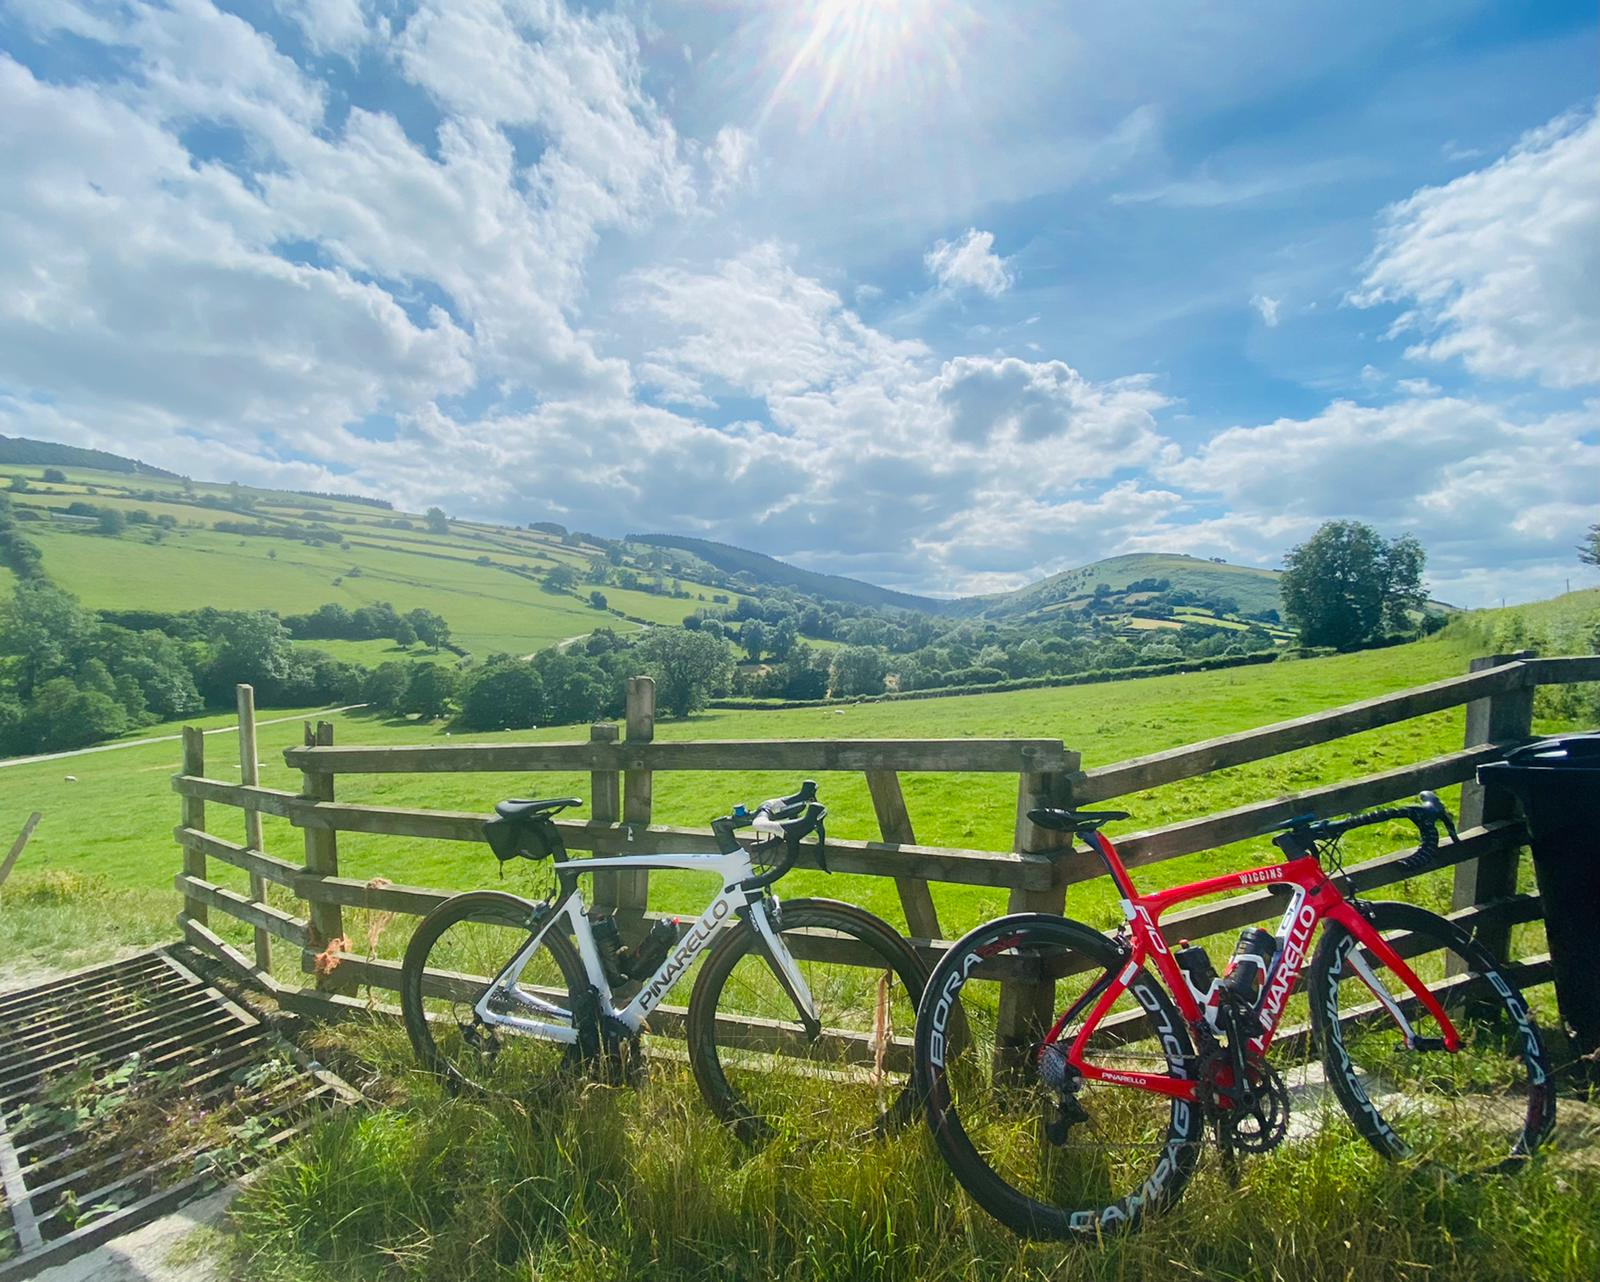 Day 5 - Monmouth to Clun